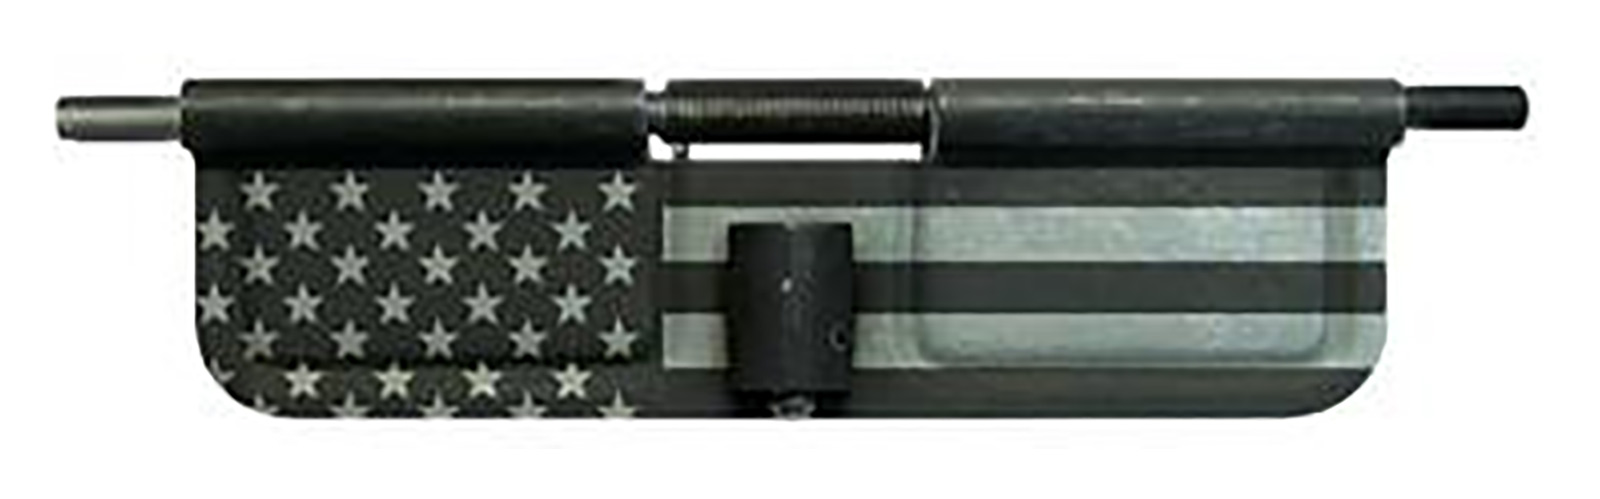 ar15-ejection-port-cover-flag-195195